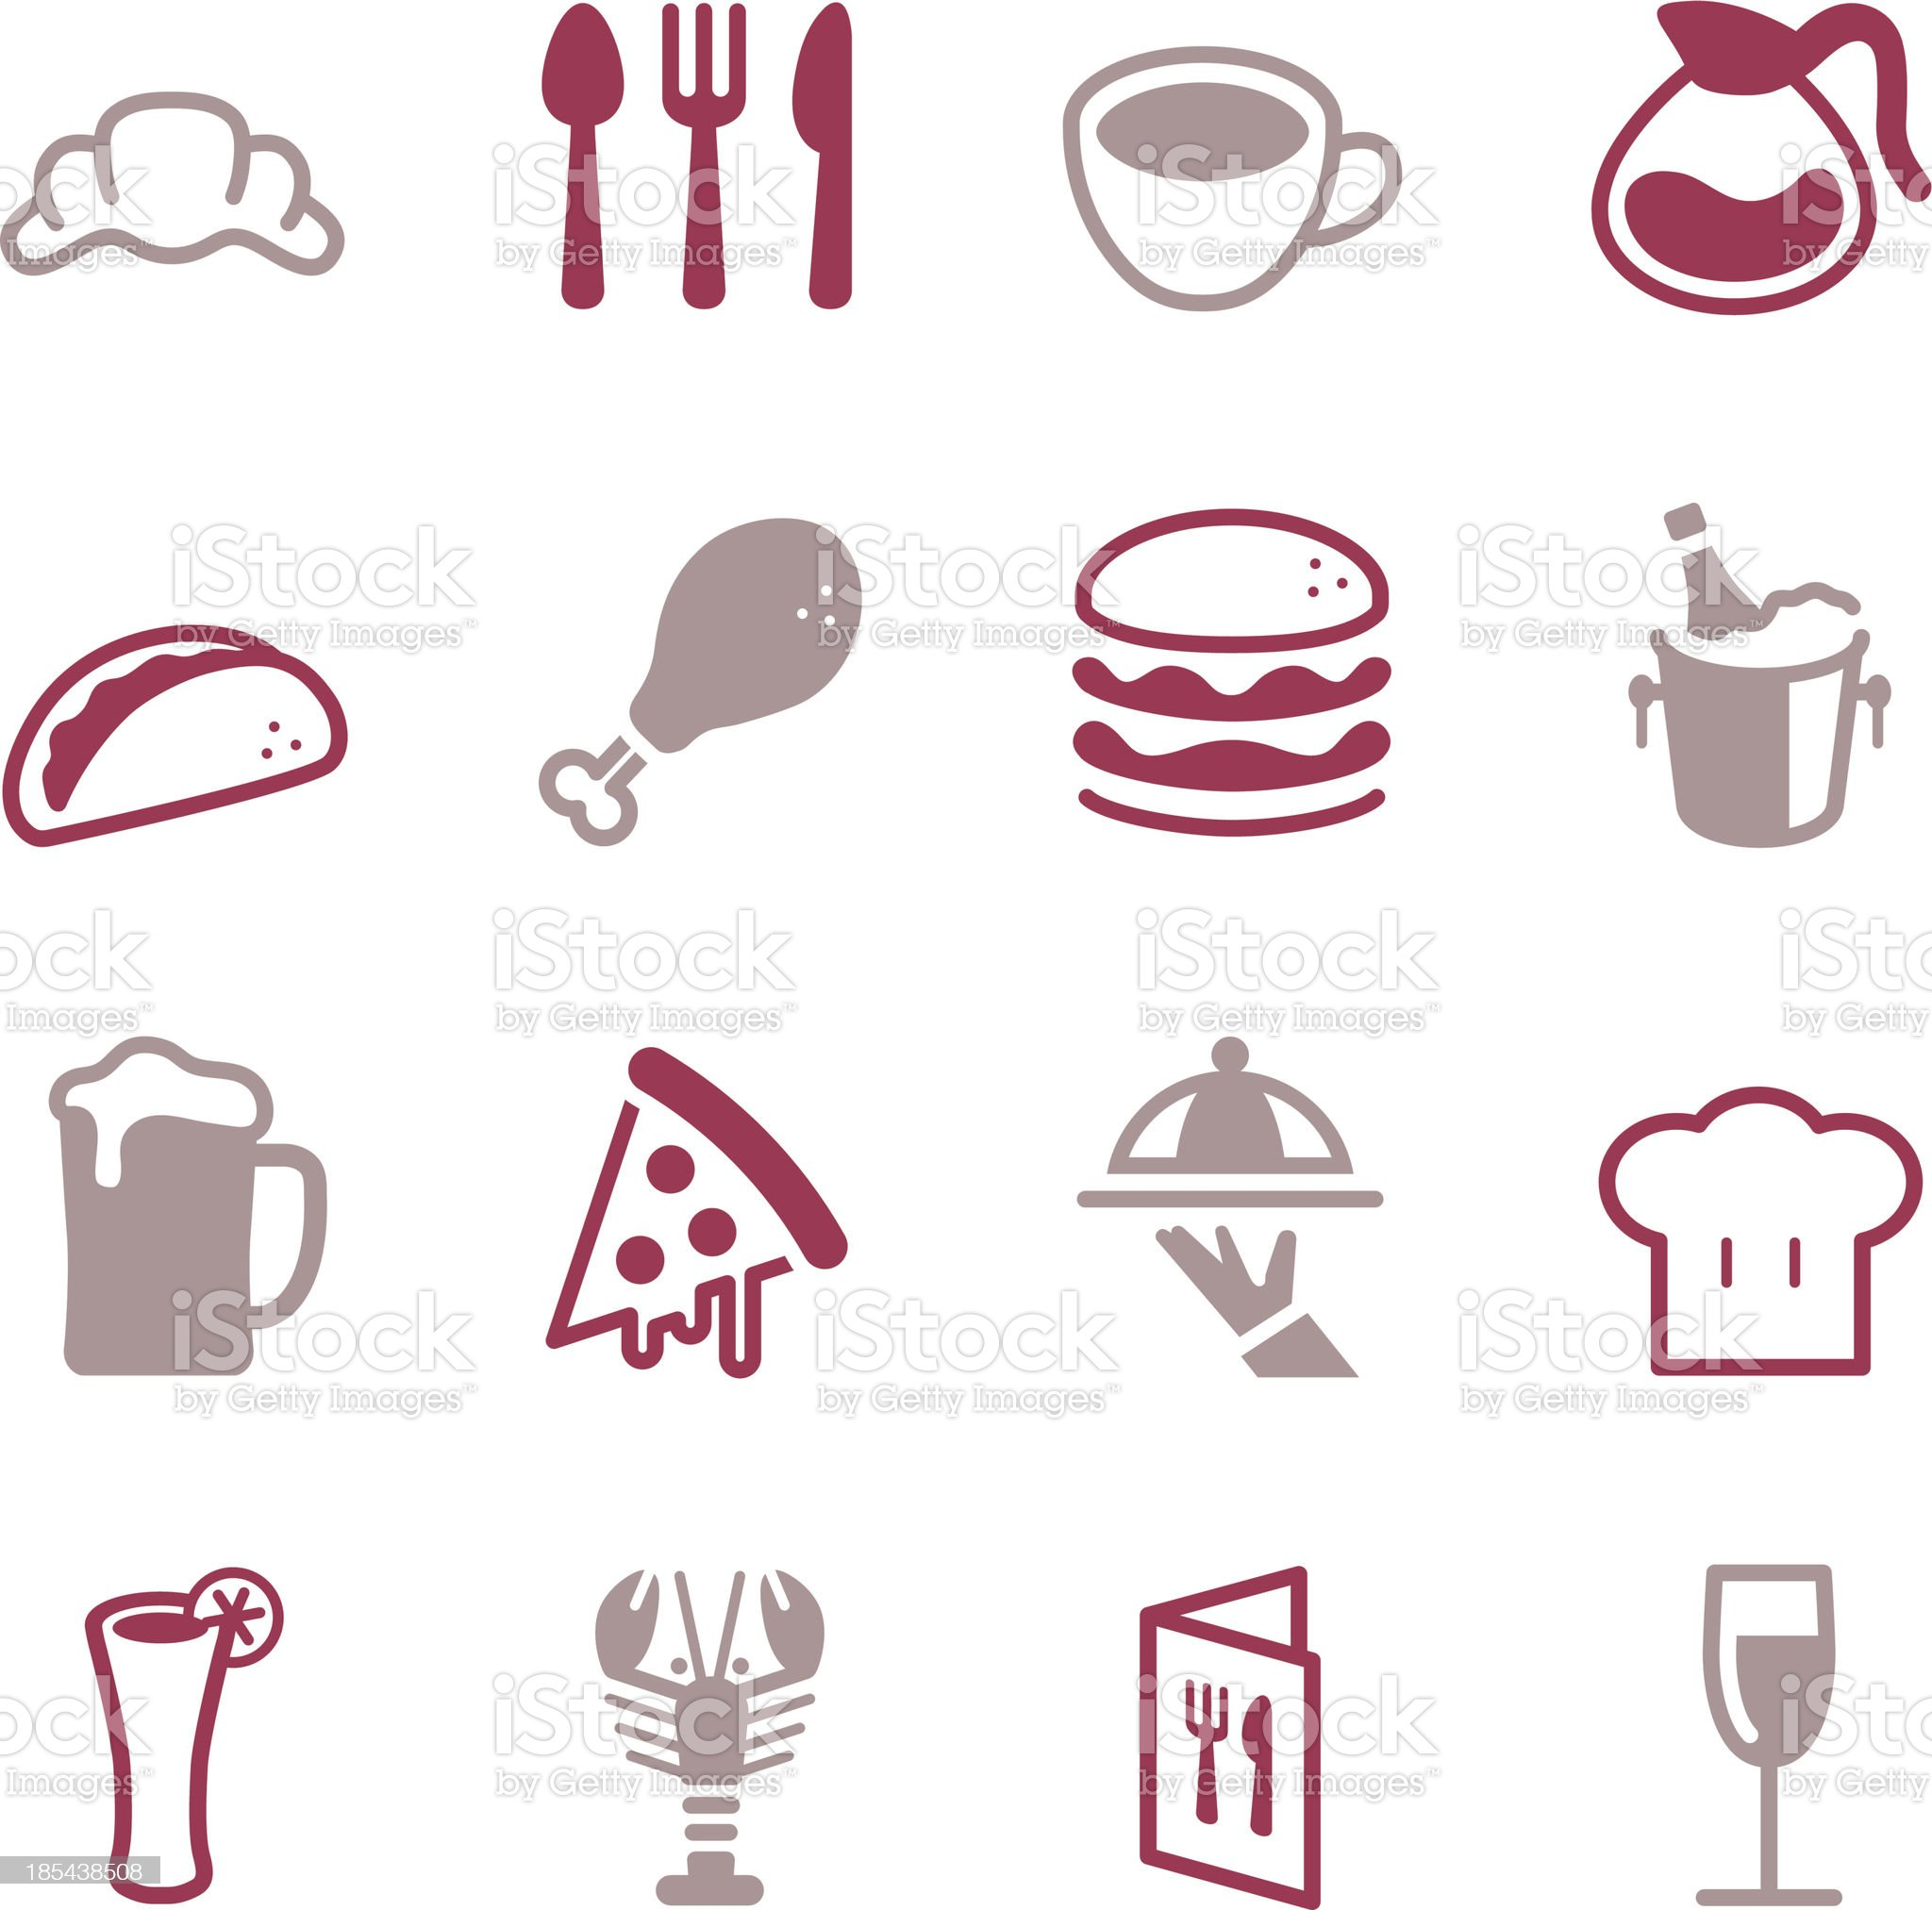 Restaurant Icons - Color Series royalty-free stock vector art